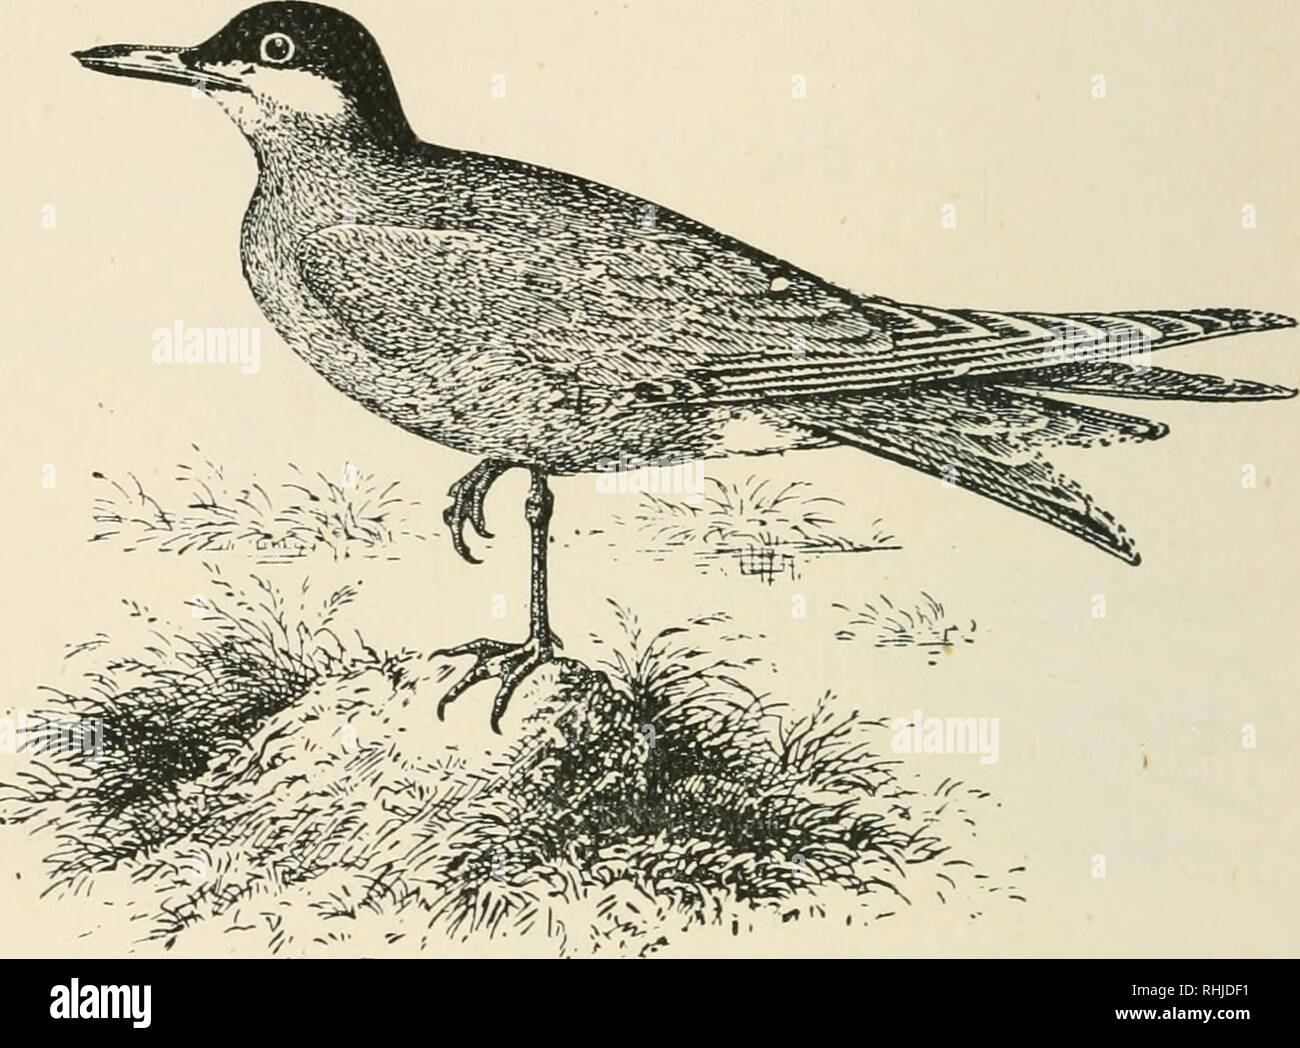 . Birds of the British Isles. Birds -- Great Britain; Birds -- Ireland. 382 BIRDS OF THE BRITISH ISLES. Mbi6ftere£) ^ern.. The Whiskered Tern {^Hydrochelidon hybrida^ Pallas) is an exceedingly rare abnormal spring and autumn migrant to the British Isles. It inhabits the Southern Palearctic and Oriental Regions, wintering in South Africa, and eastward has occurred as far south as Australia. The adult in breed- ing plumage has the head and nape of neck black; upper parts, lightish-grey; sides of face, chin, throat, and tail, white; under wing-coverts, white; chest, light grey; belly and flanks,  - Stock Image